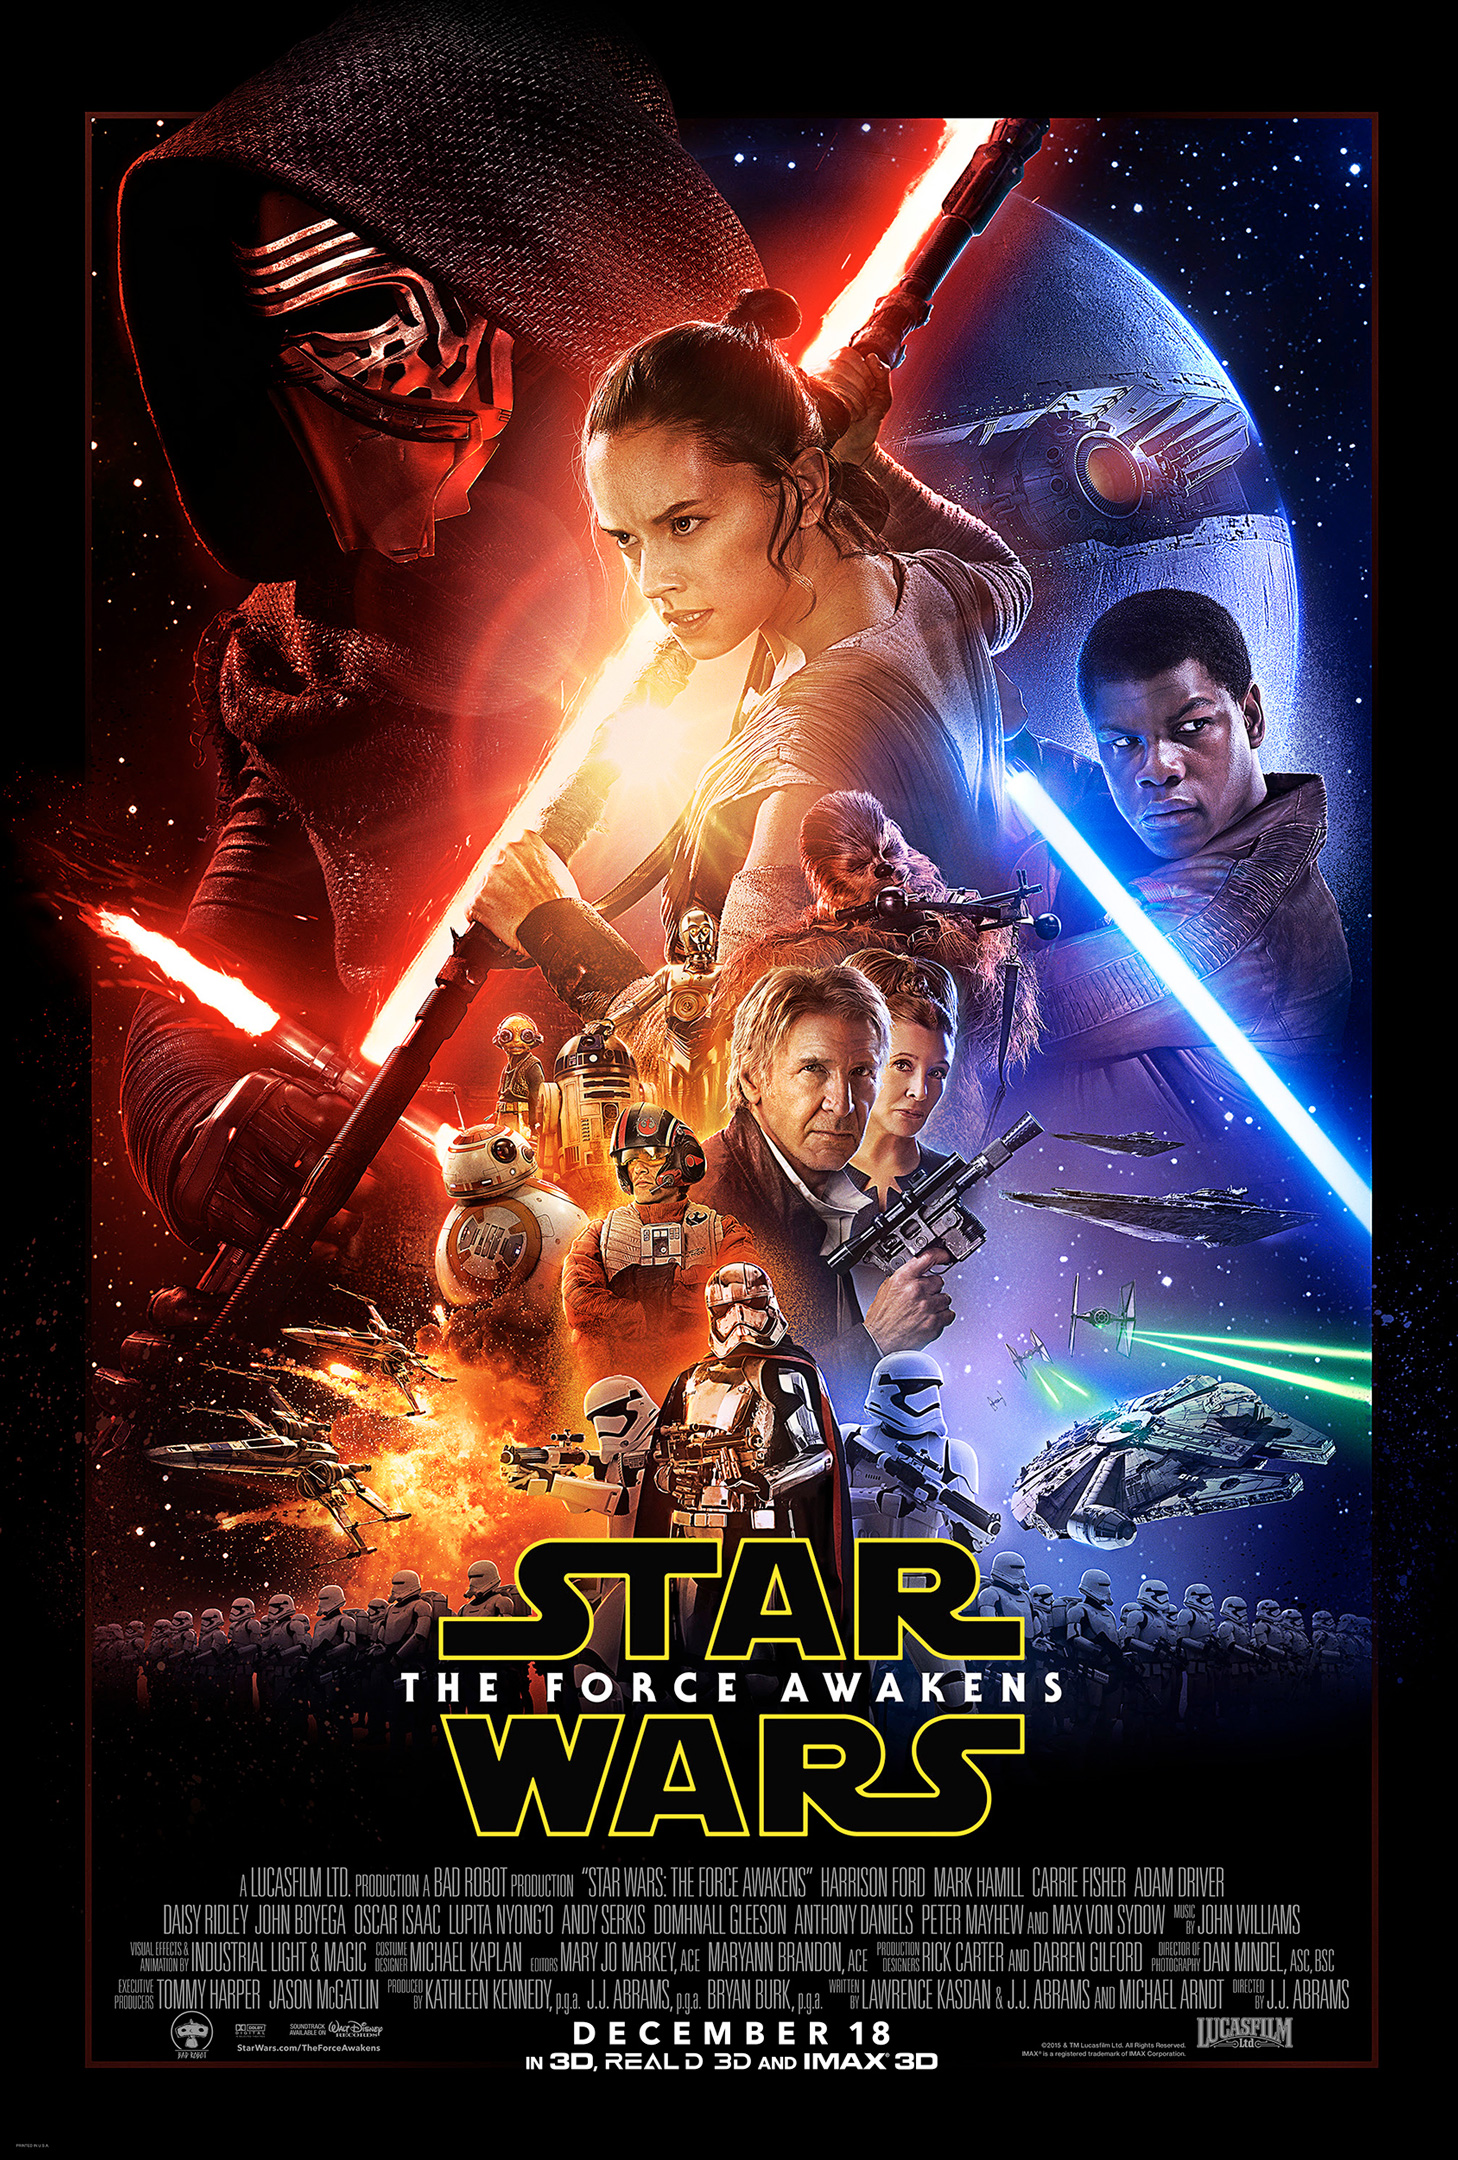 The Force Awakens poster. John Boyega, Carrie Fisher, Harrison Ford and Daisy Ridley